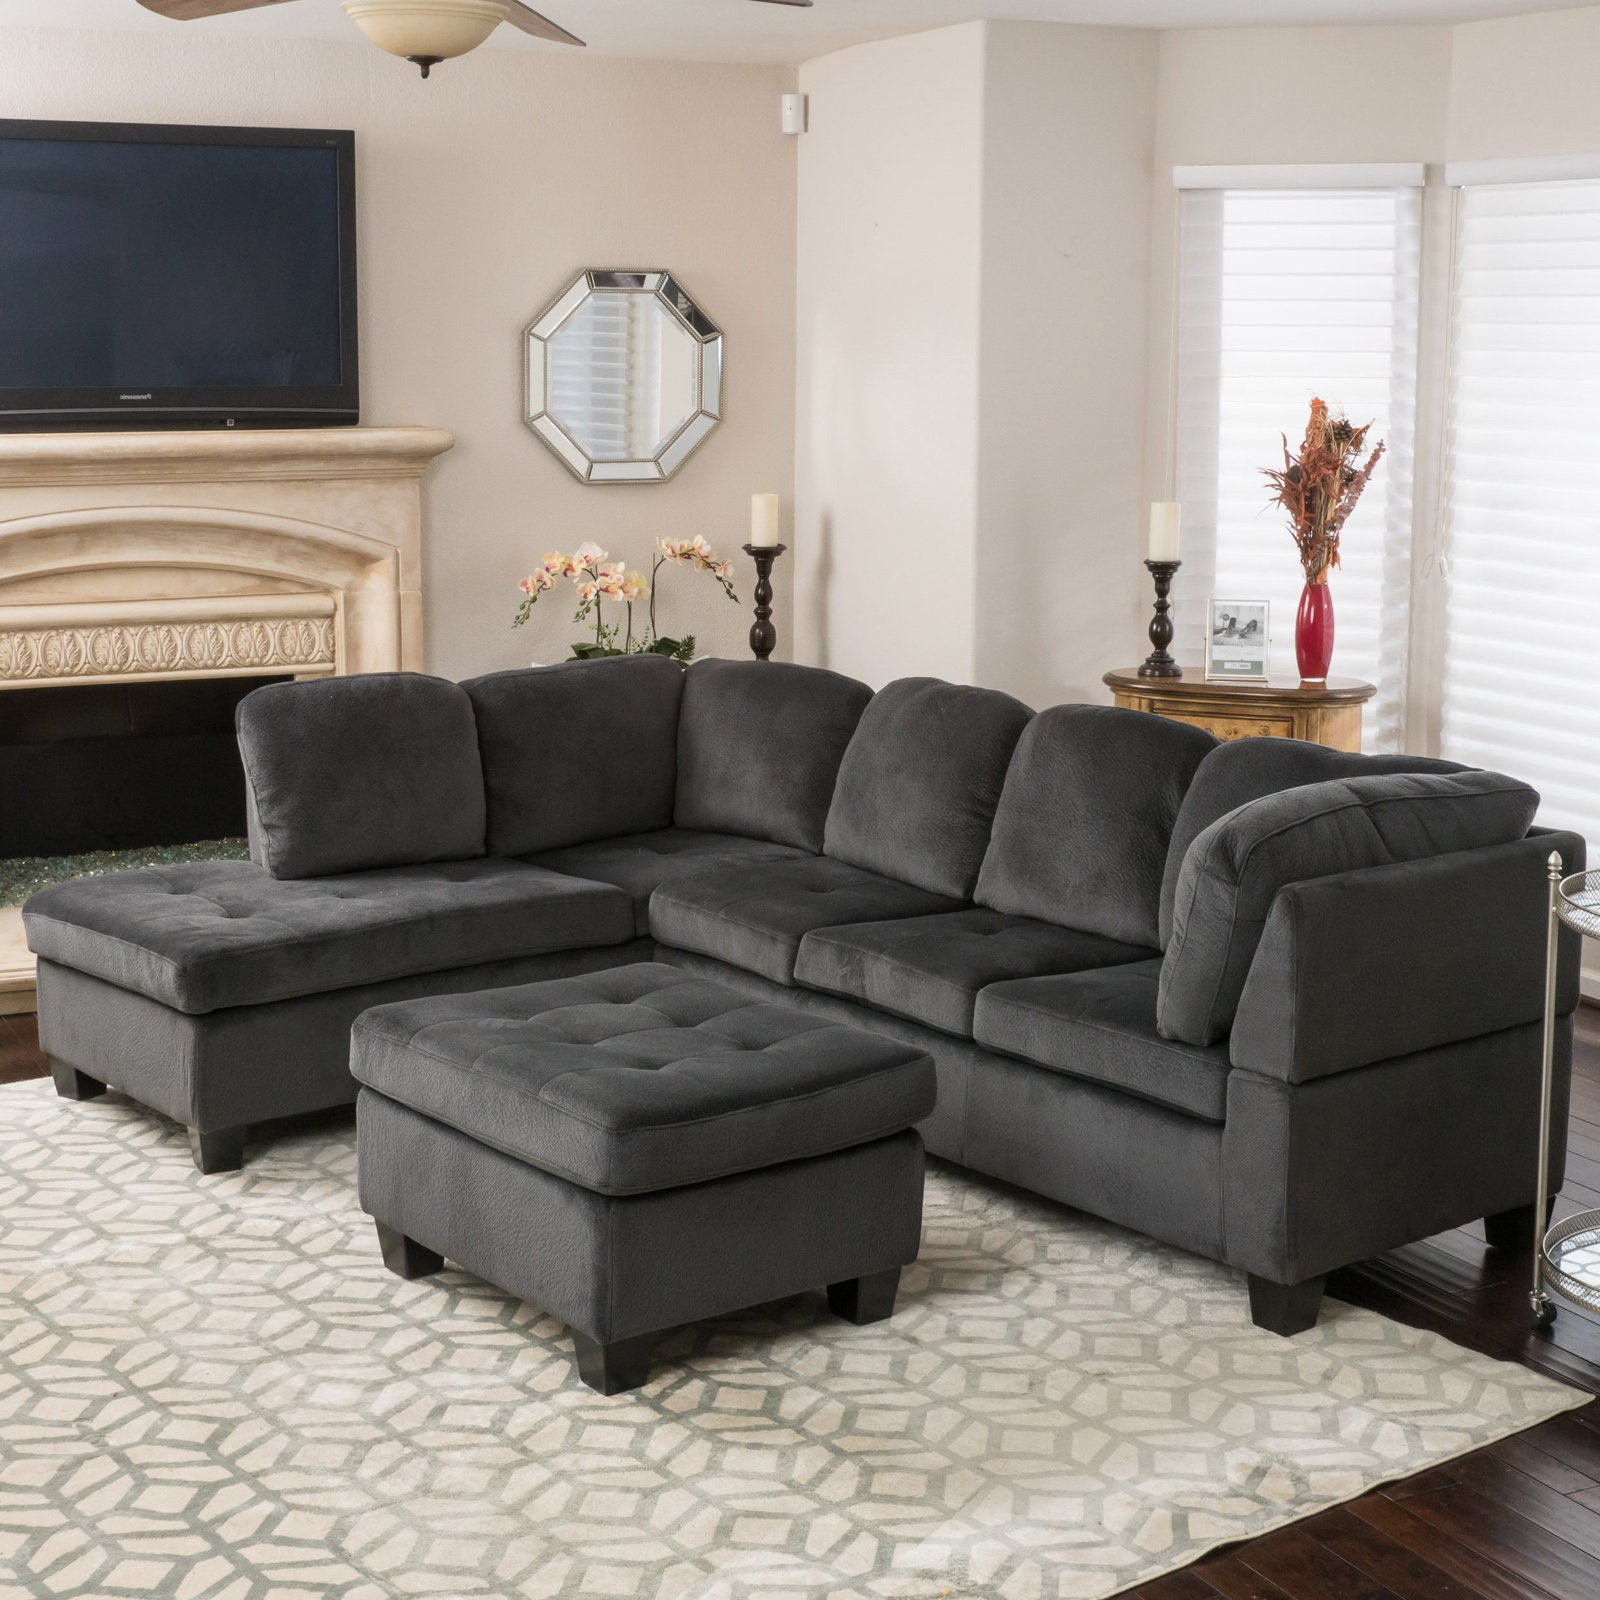 Evan 3 Piece Sectional Sofa (Gallery 2 of 20)